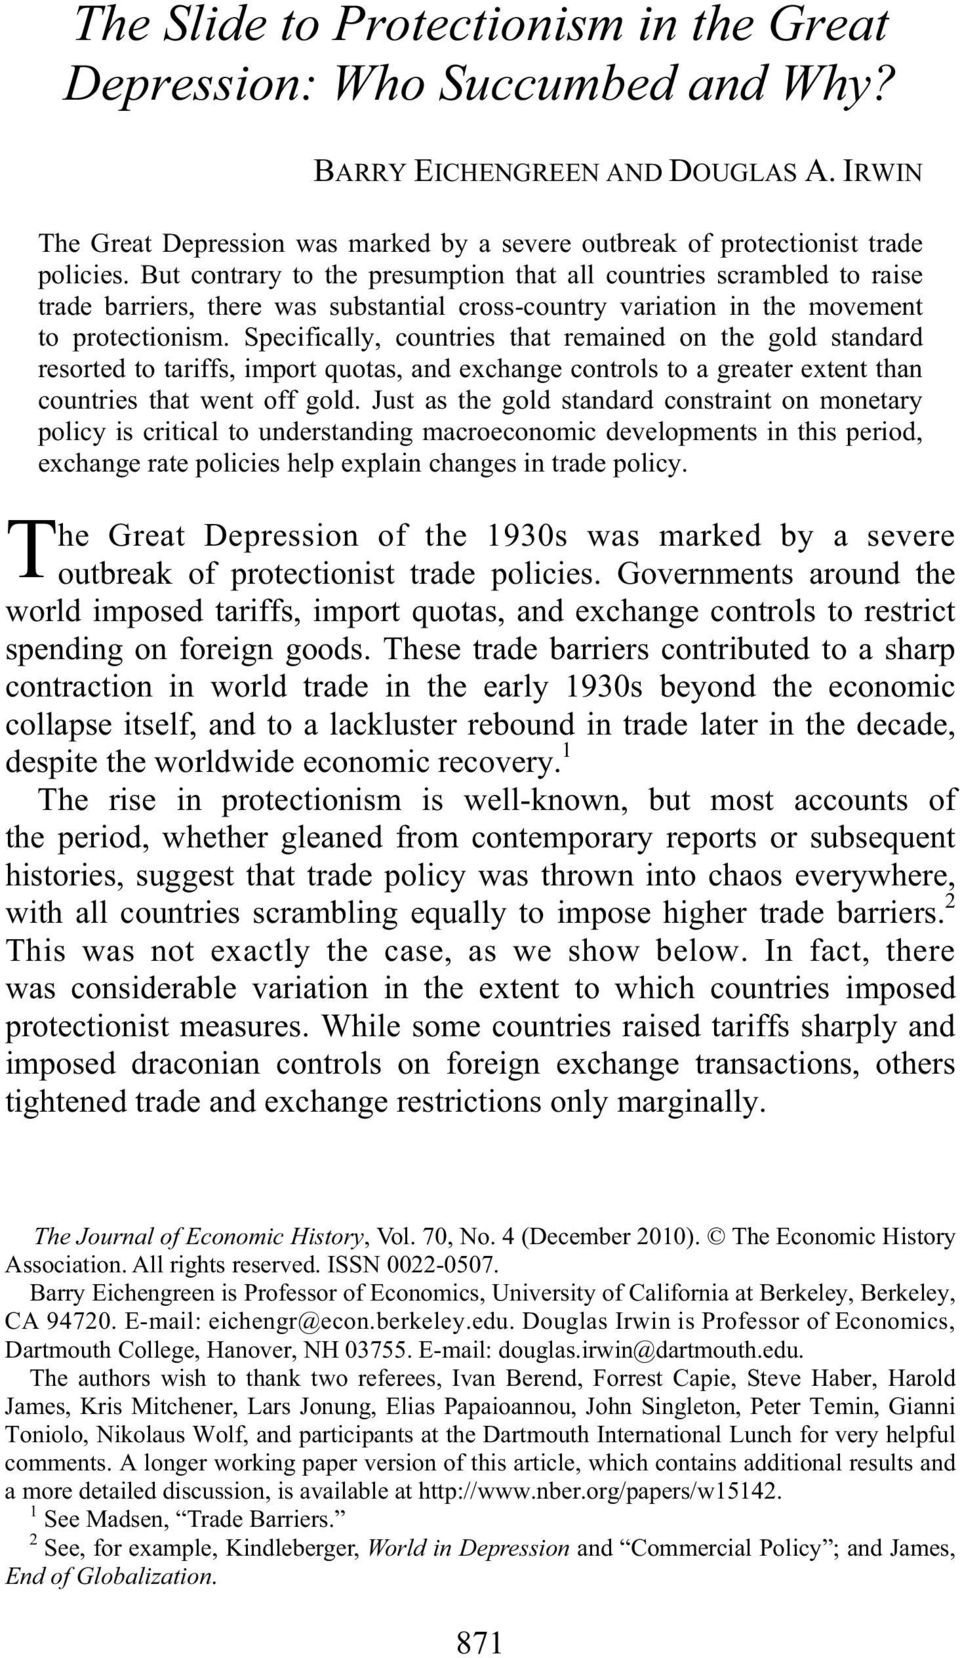 But contrary to the presumption that all countries scrambled to raise trade barriers, there was substantial cross-country variation in the movement to protectionism.